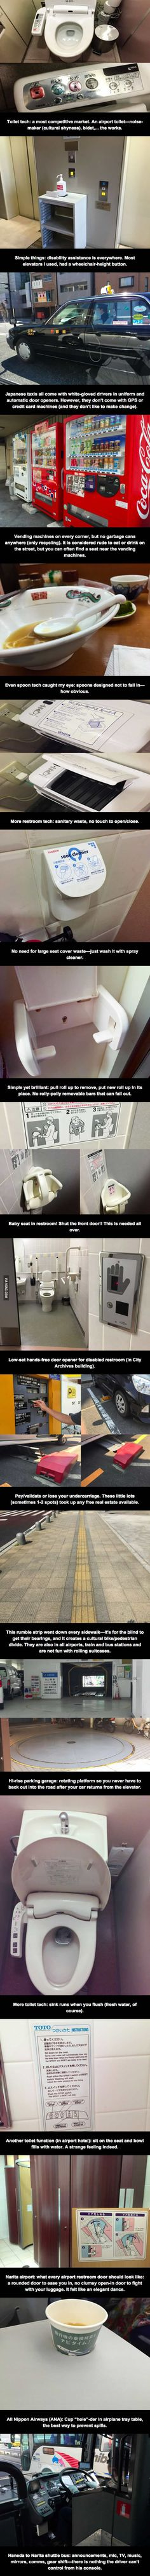 A man visited Japan once... decided to detail the lesser known facilities there - 9GAG